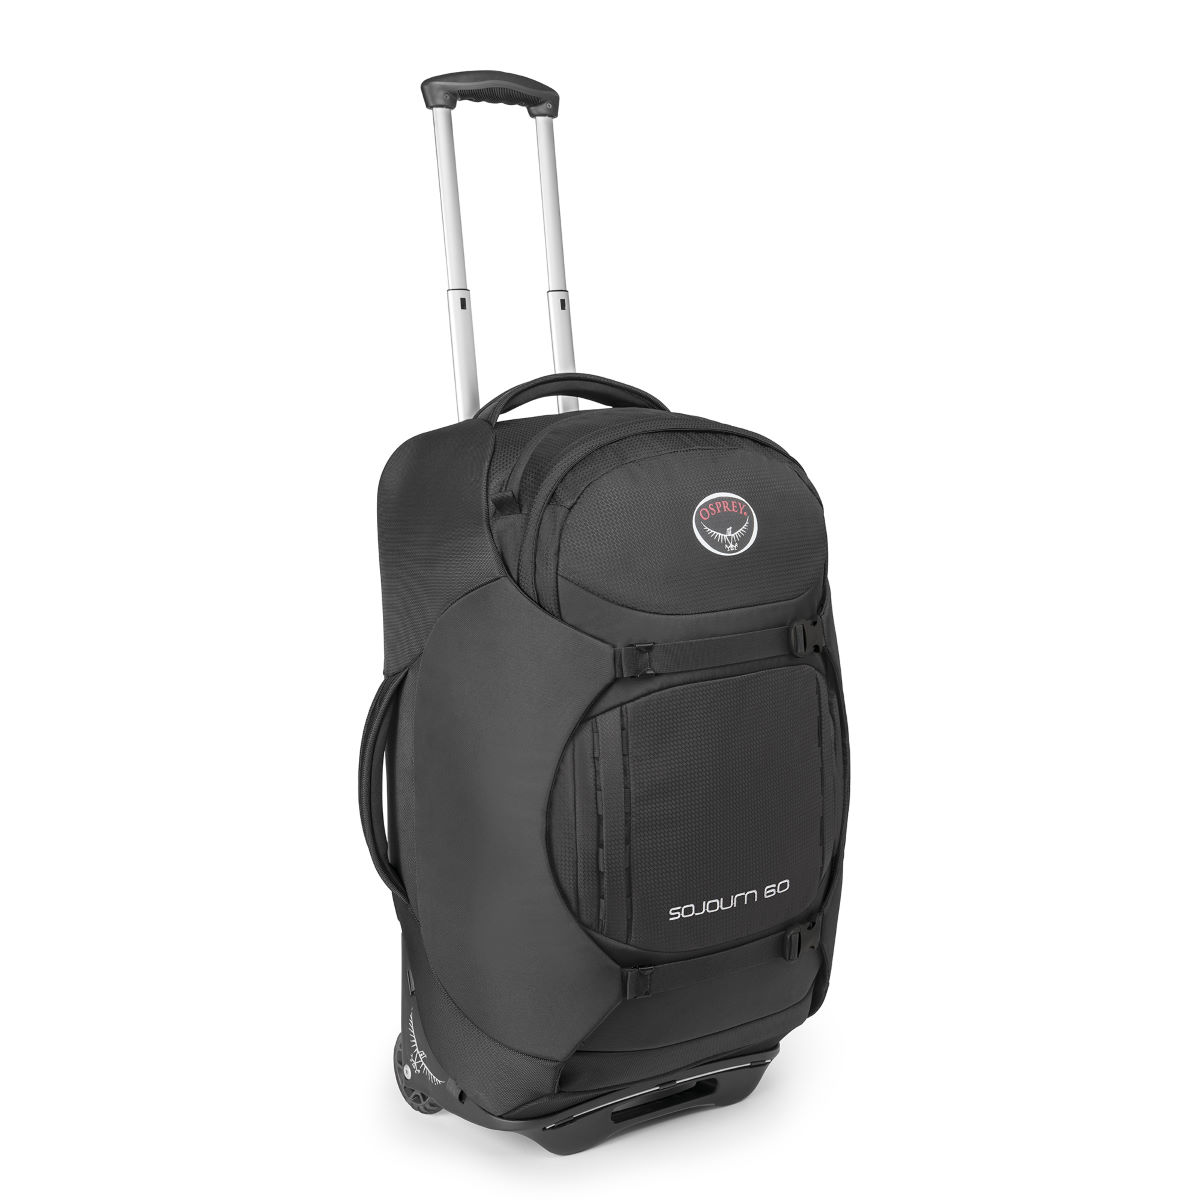 Osprey Sojourn 60   Travel Bags